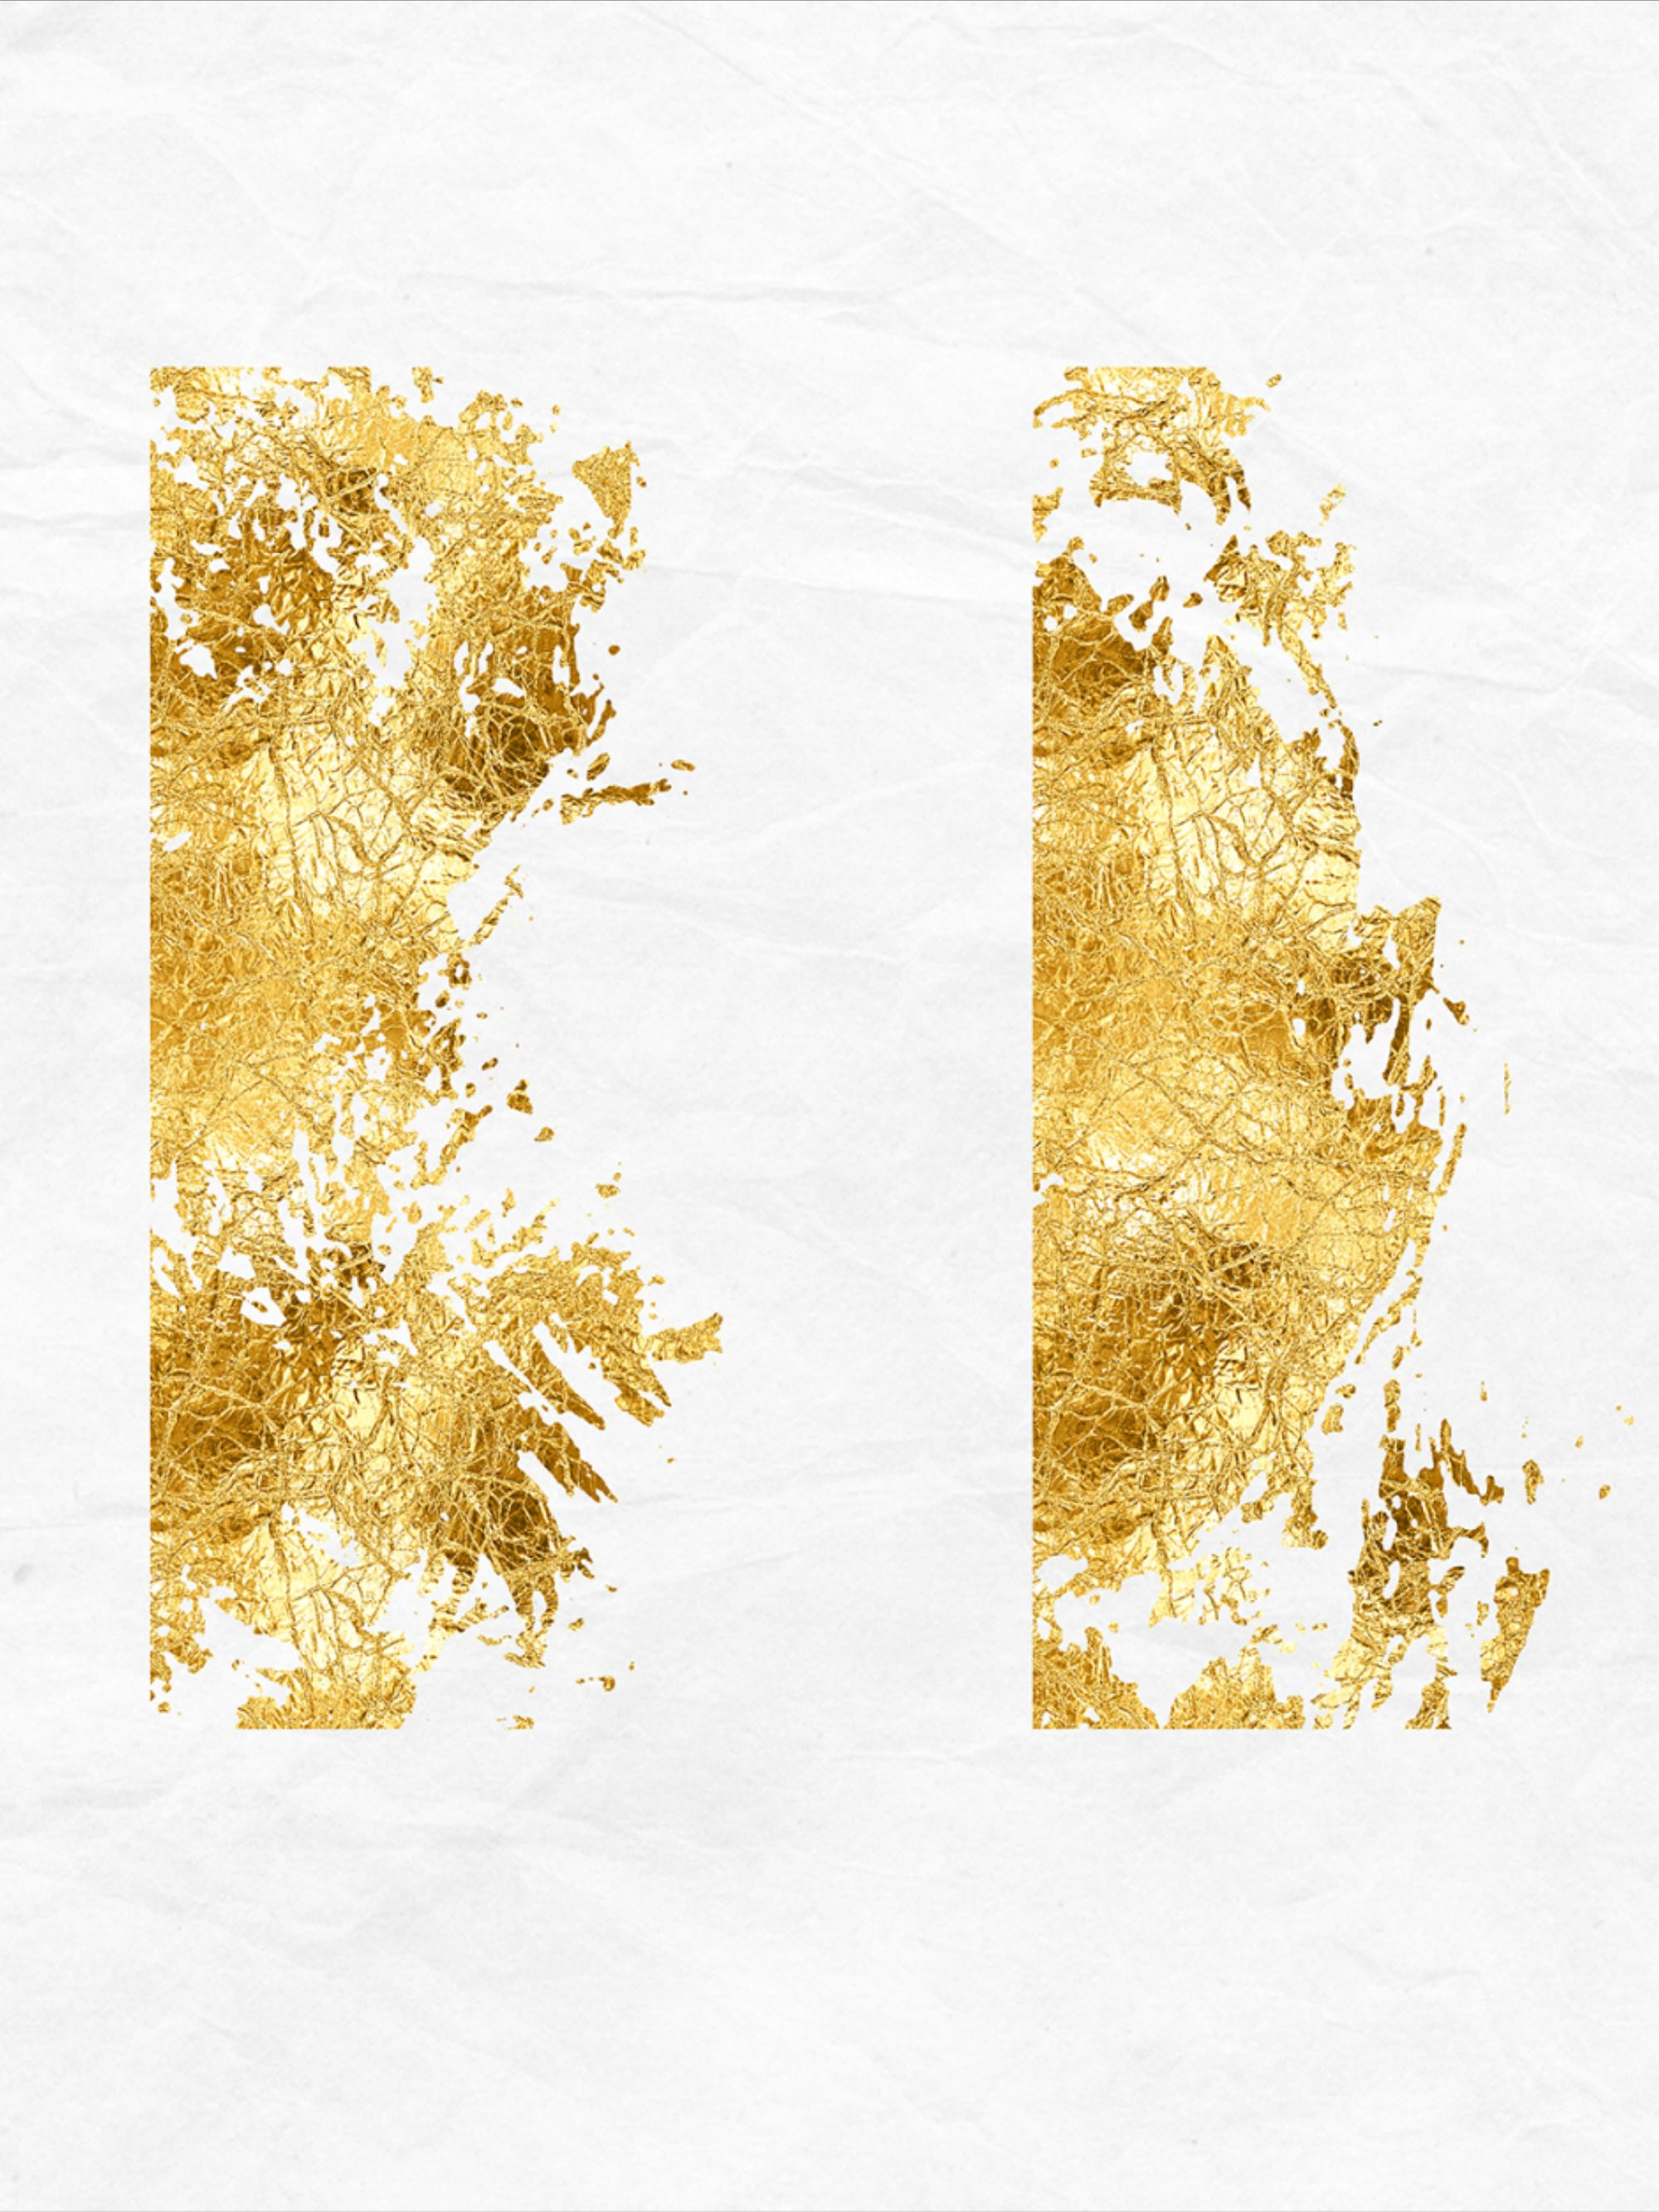 Gold Foil Flake Clipart Gold Borders Overlays Gold Foil Frames Gold Grunge Png Clipart Gold Leaf Art Gold Design Elemets Gold Clipart Gold Leaf Art Gold Clipart Clip Art